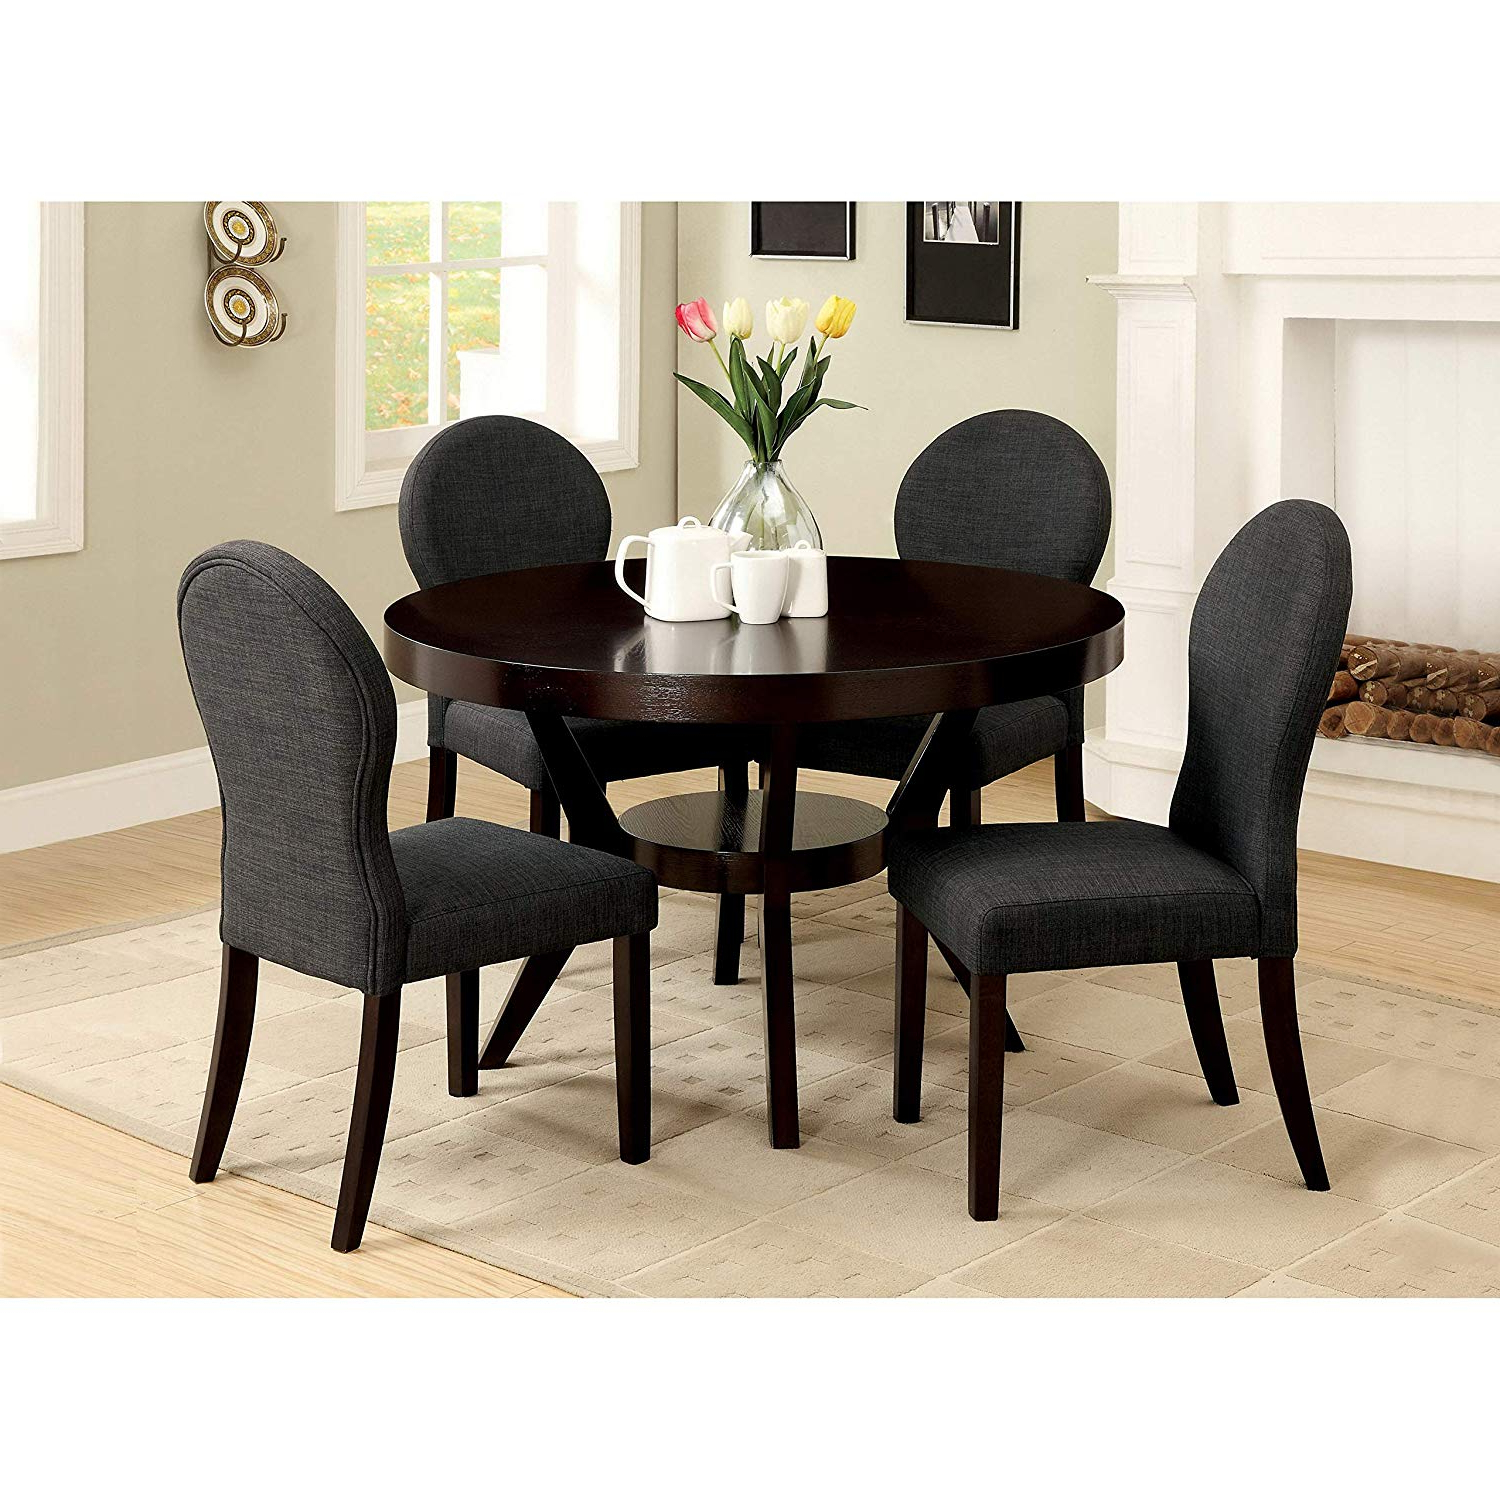 Famous Amazon – Furniture Of America Magnolia 5 Piece Espresso Finish Inside Maynard 5 Piece Dining Sets (View 17 of 25)